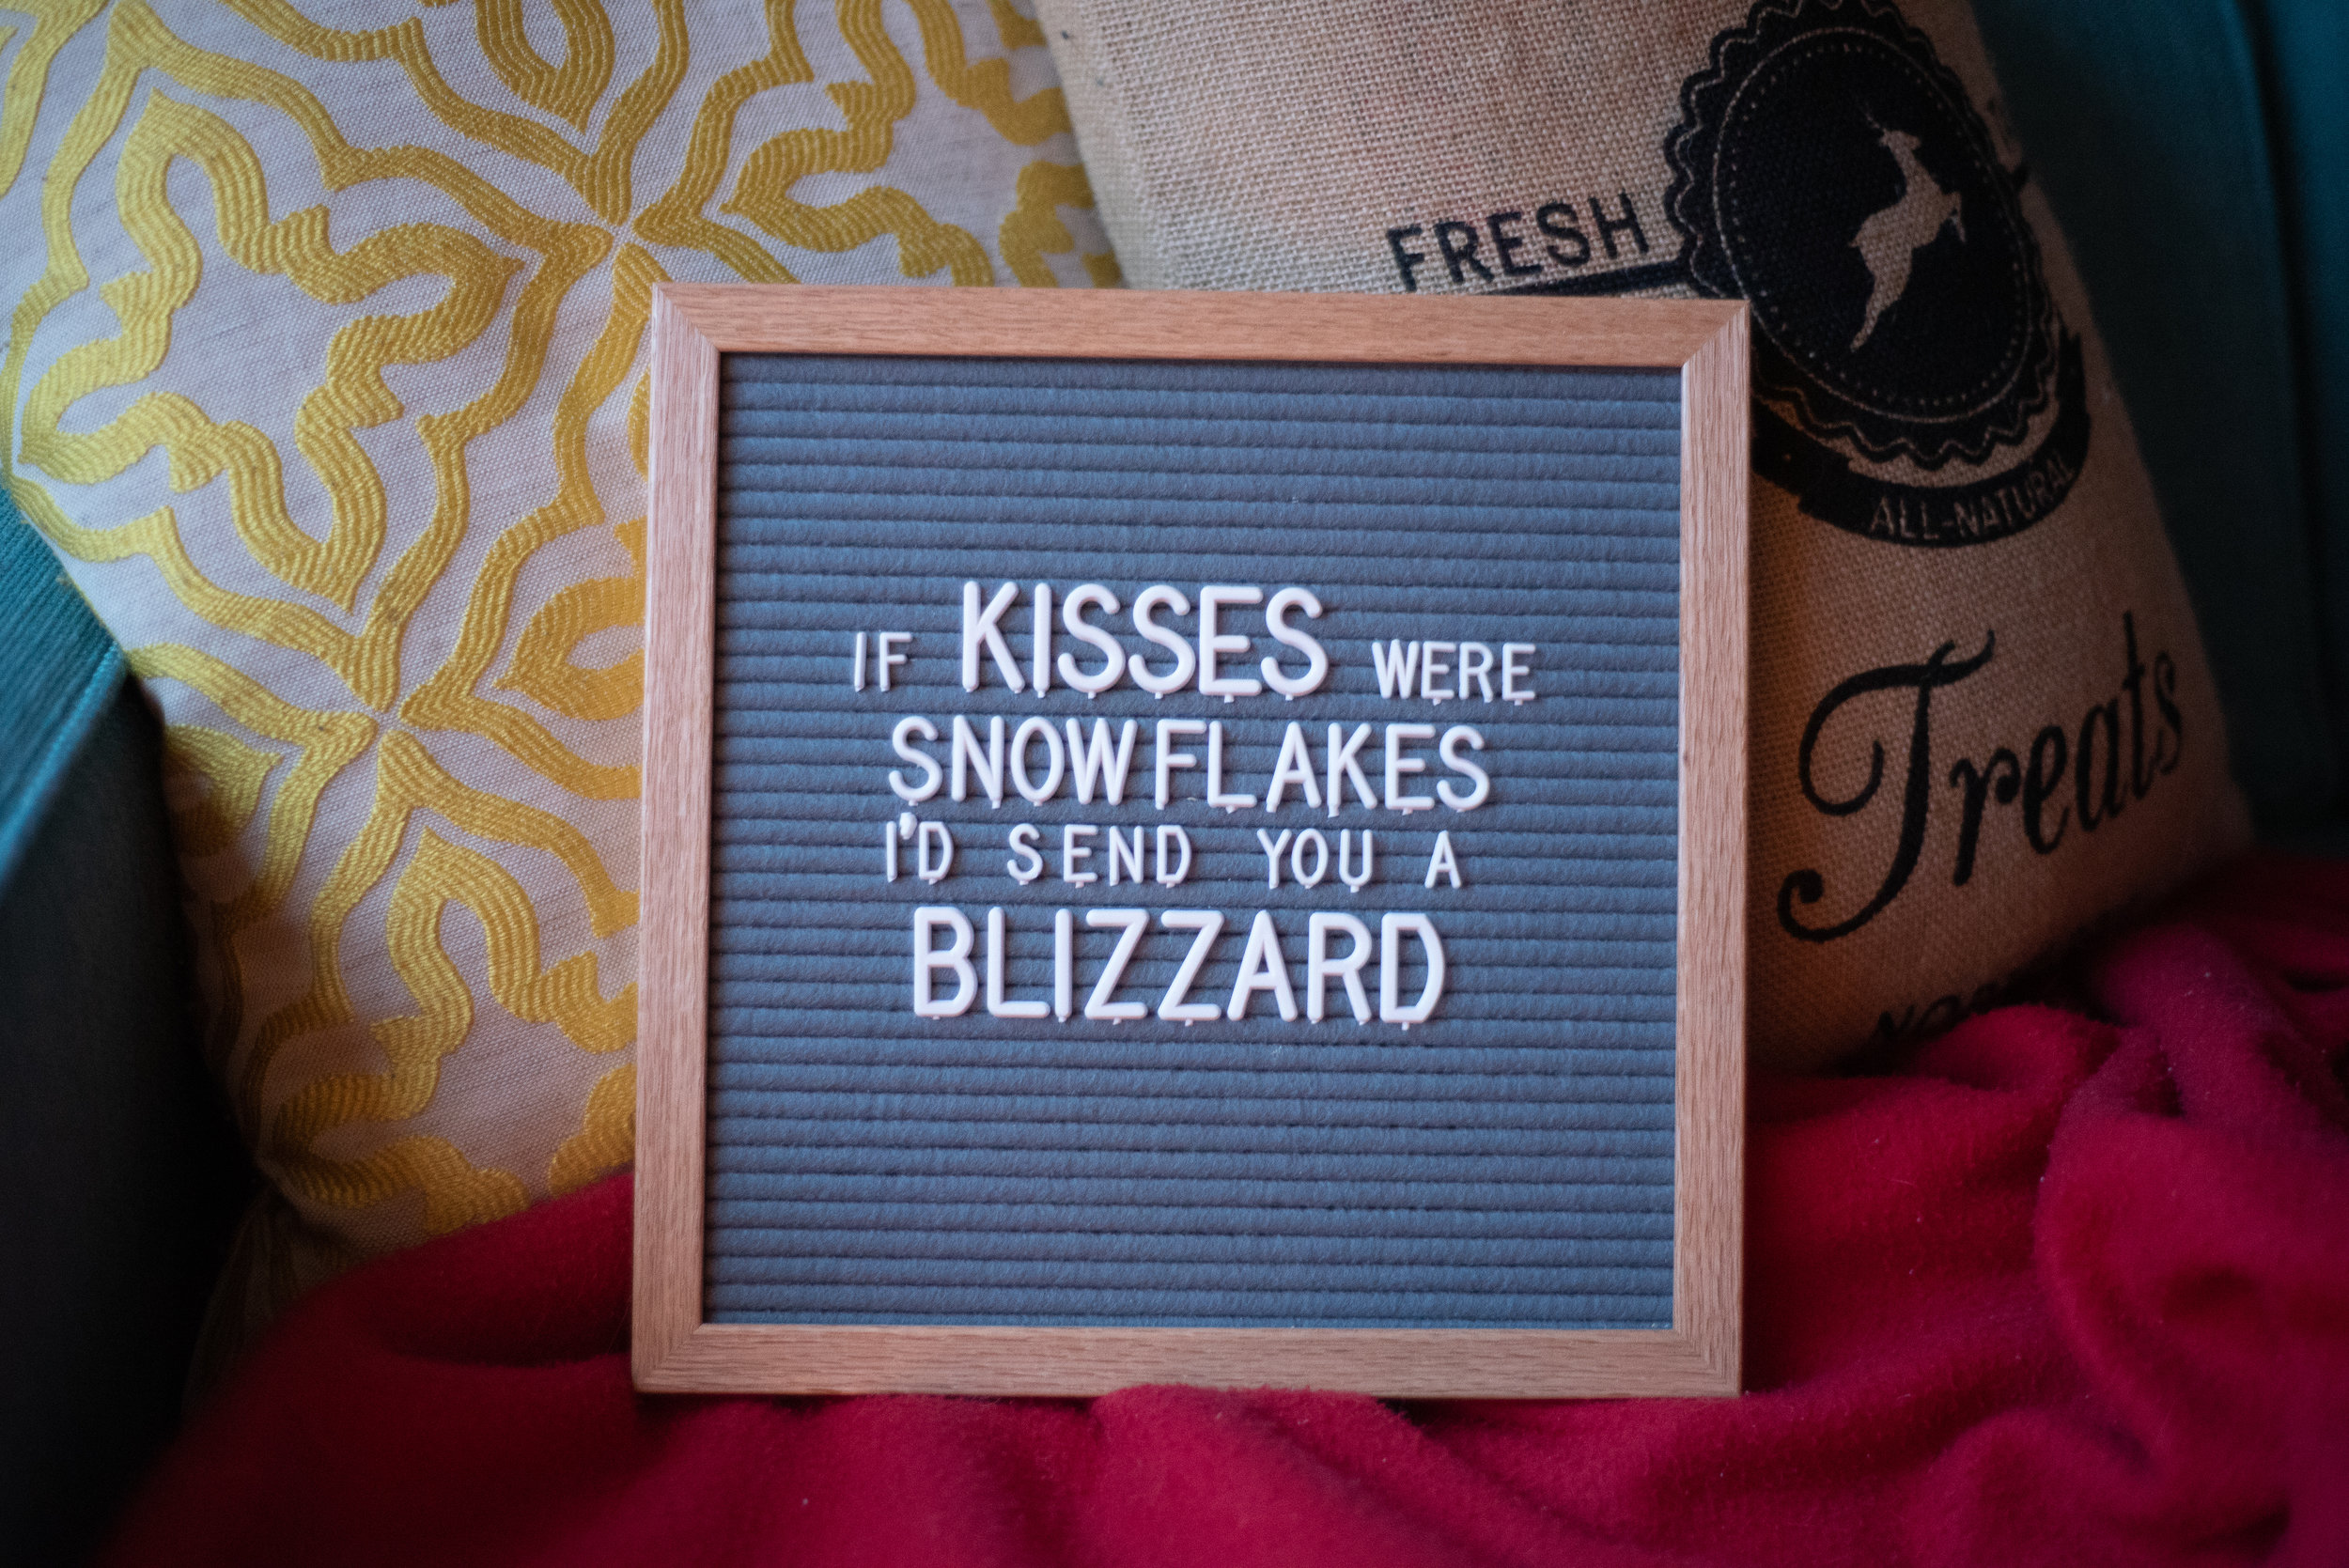 if-kisses-were-snowflakes-lily-muffins-letter-board